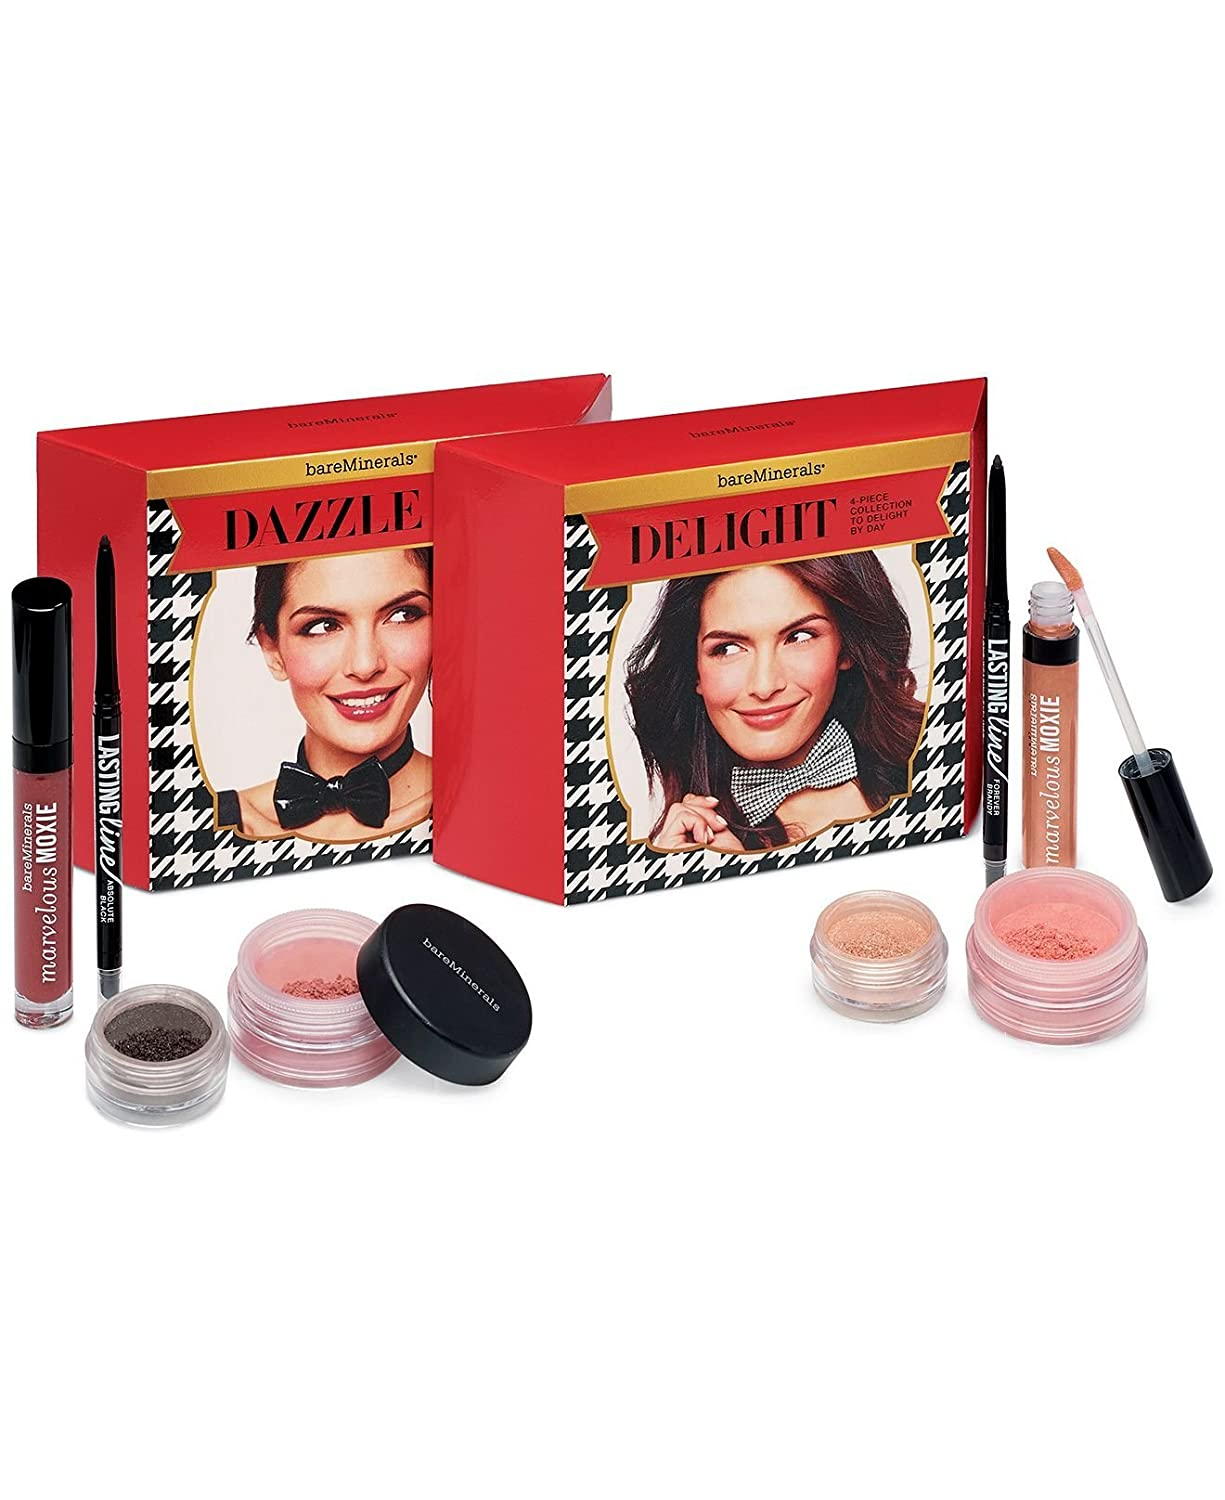 bareMinerals Delight Dazzle 8pc Day Night Break Apart Collection by Bare Escentuals